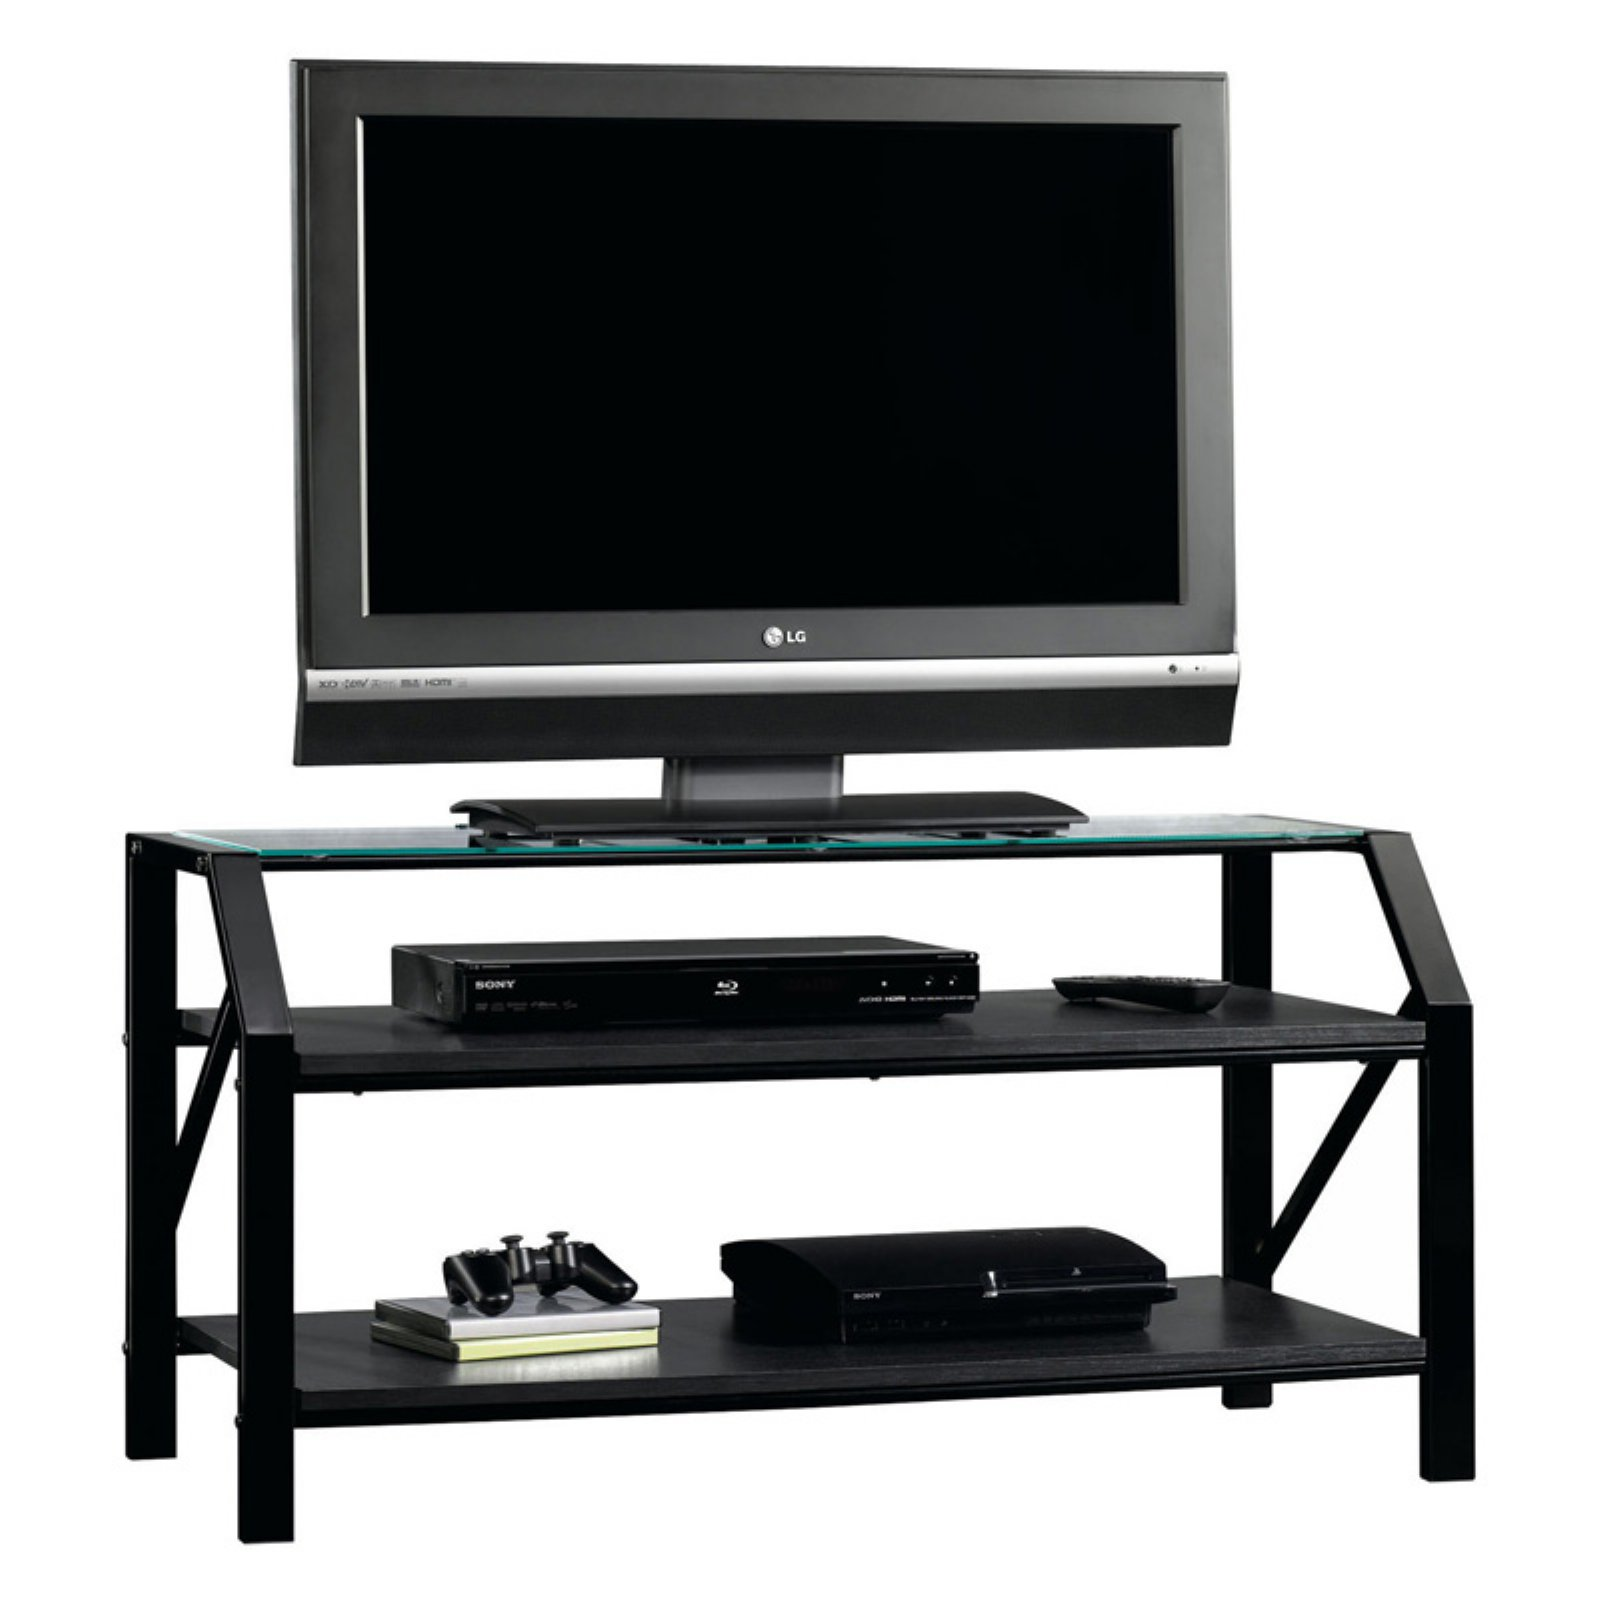 "Sauder Beginnings Panel TV Stand for TVs up to 47"", Black Finish"